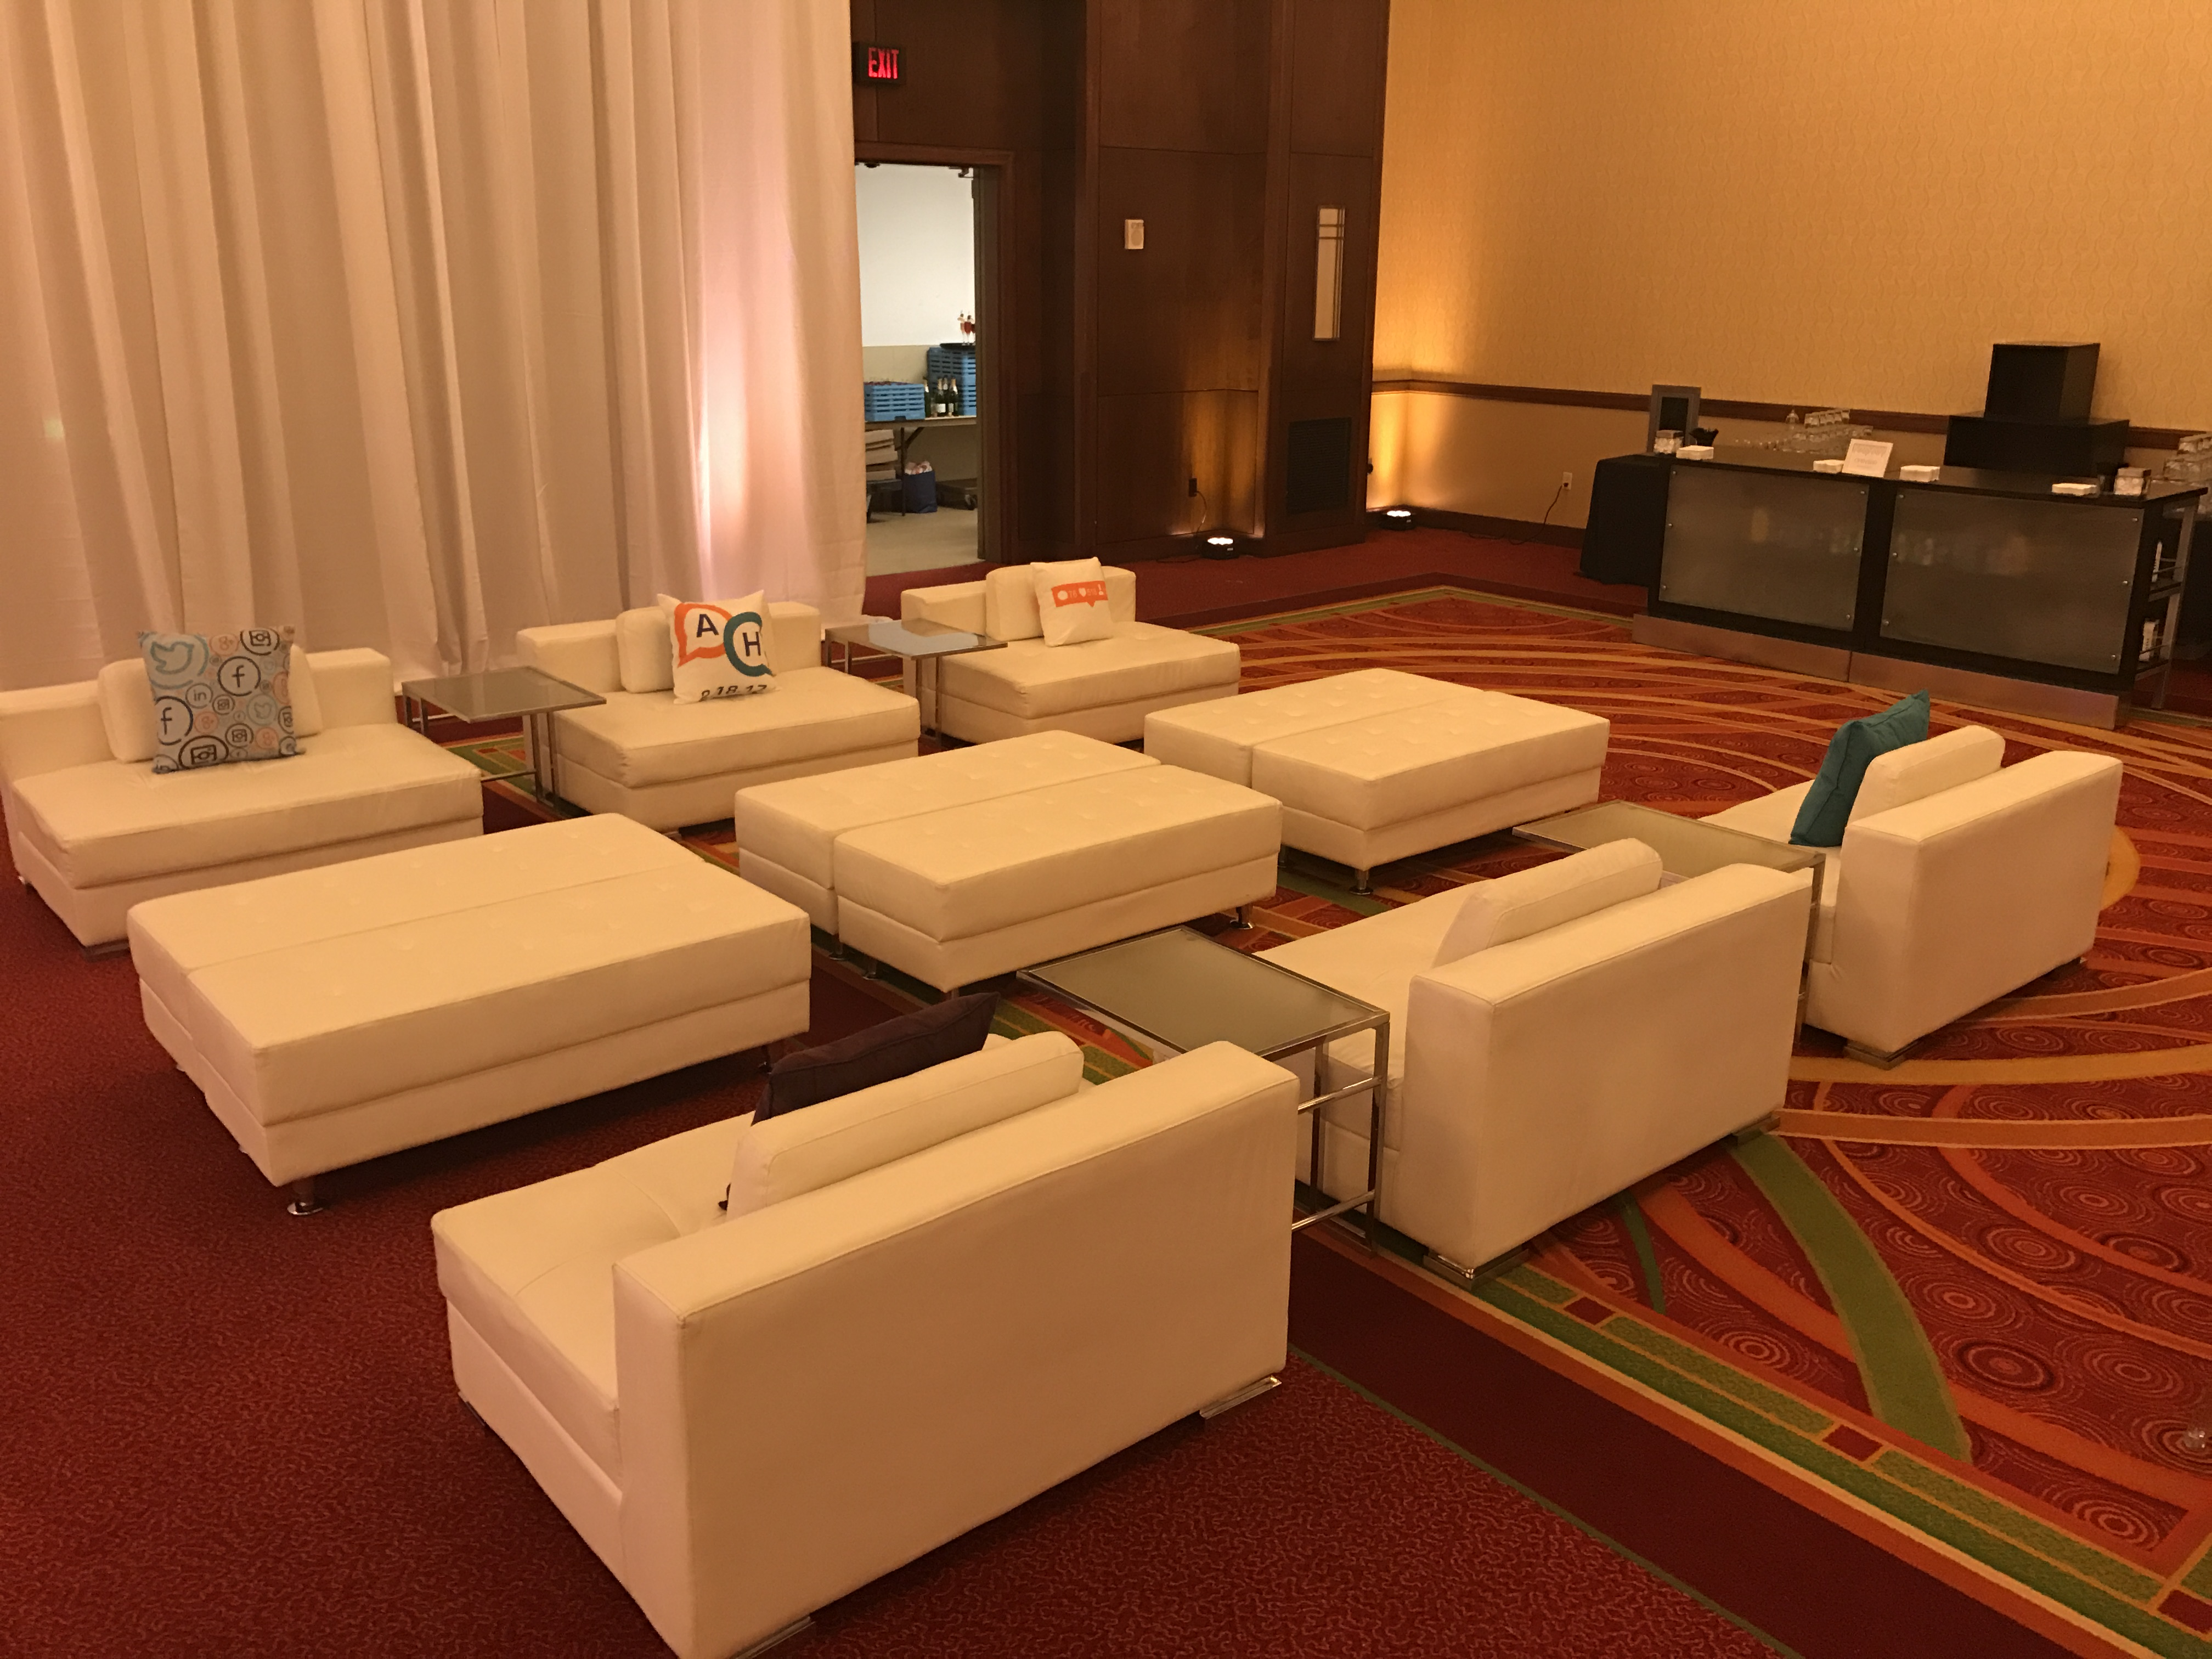 Custom Lounges Custom Lounge Furniture Rentals Wedding And Event Decor